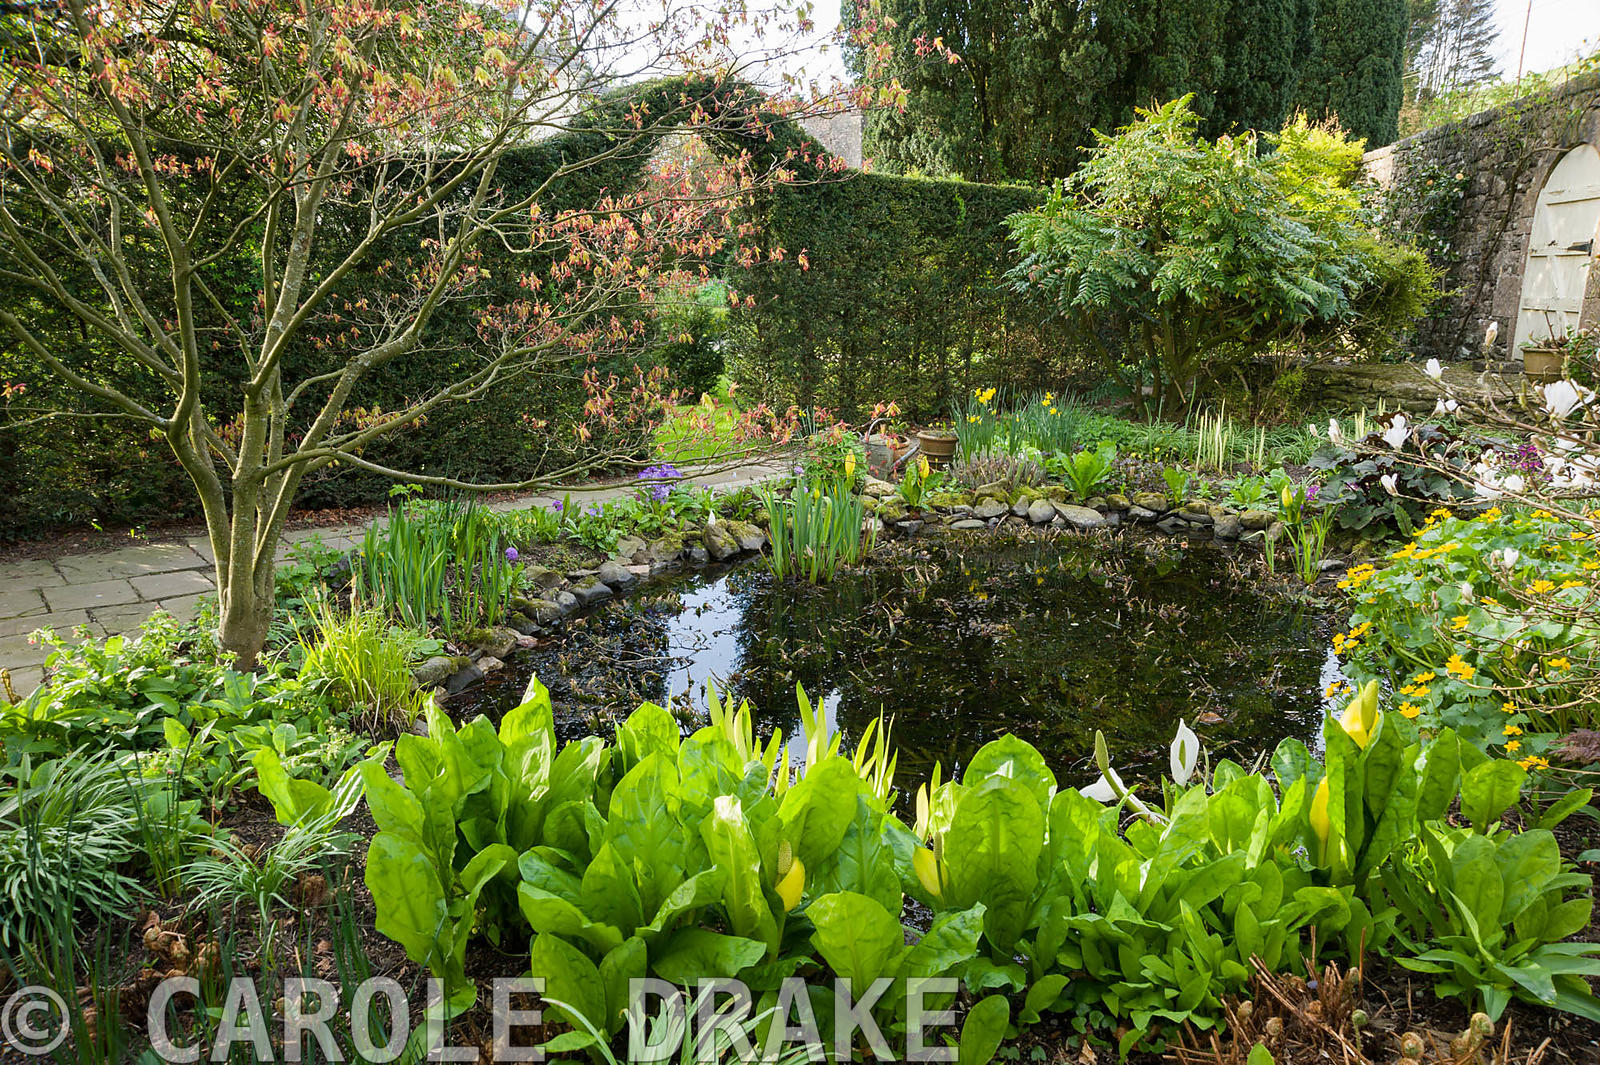 Small pond surrounded by Lysichiton americanus, irises, marsh marigold, Caltha palustris and shrubs mahonia, acer and Magnoli...